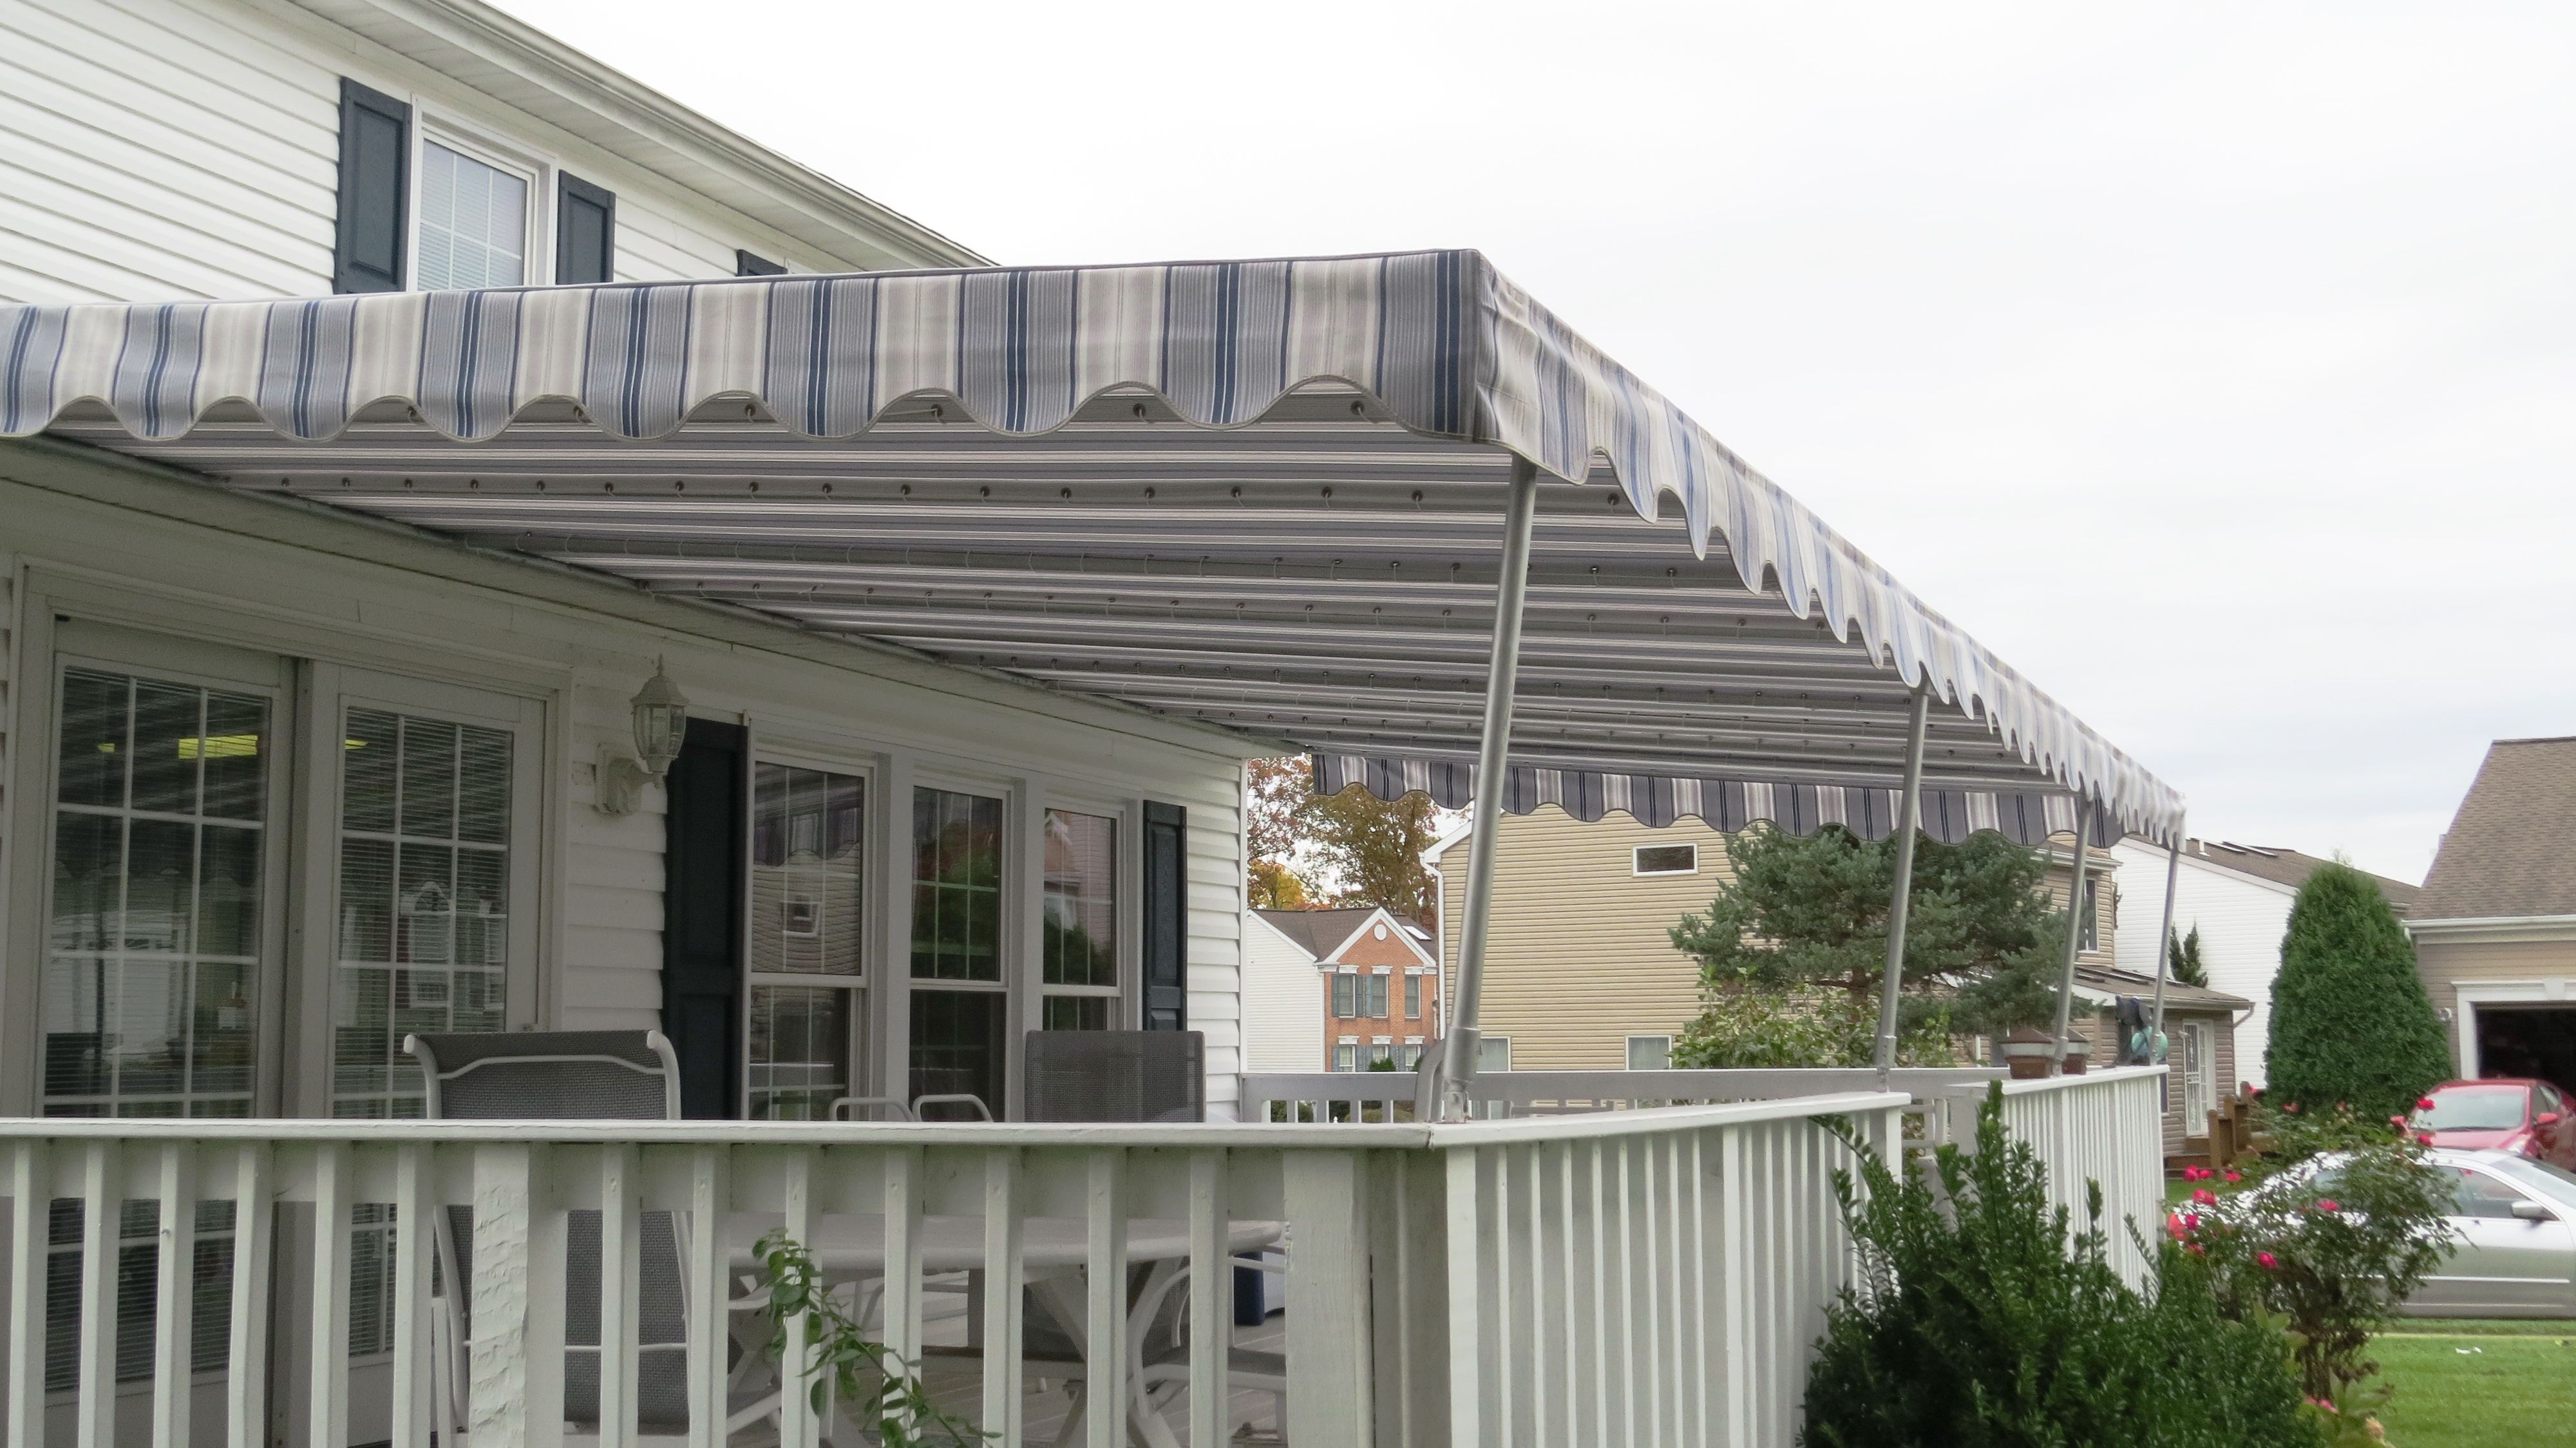 Call A Hoffman Awning in Baltimore     410-685-5687 Residential Porch Awning  Baltimore Maryland